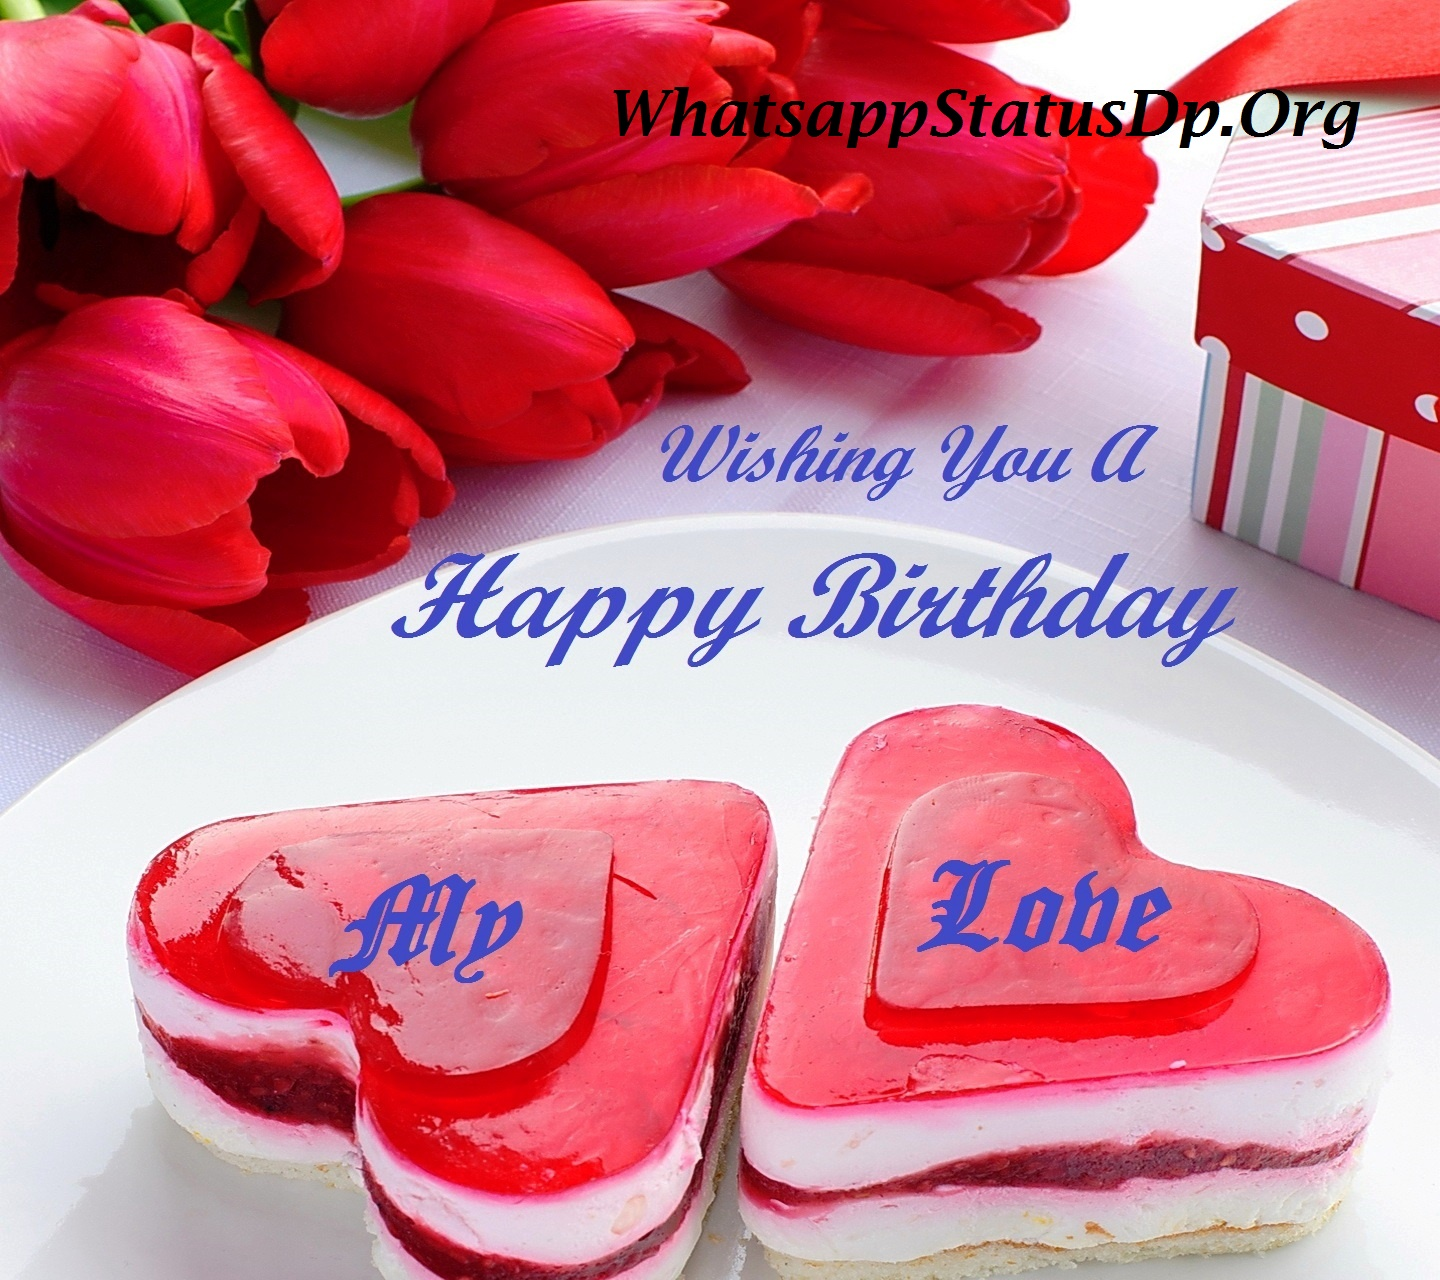 Lovely birthday greetings for romantic person nicewishes beautiful heart combination picture more birthday greetings kristyandbryce Choice Image